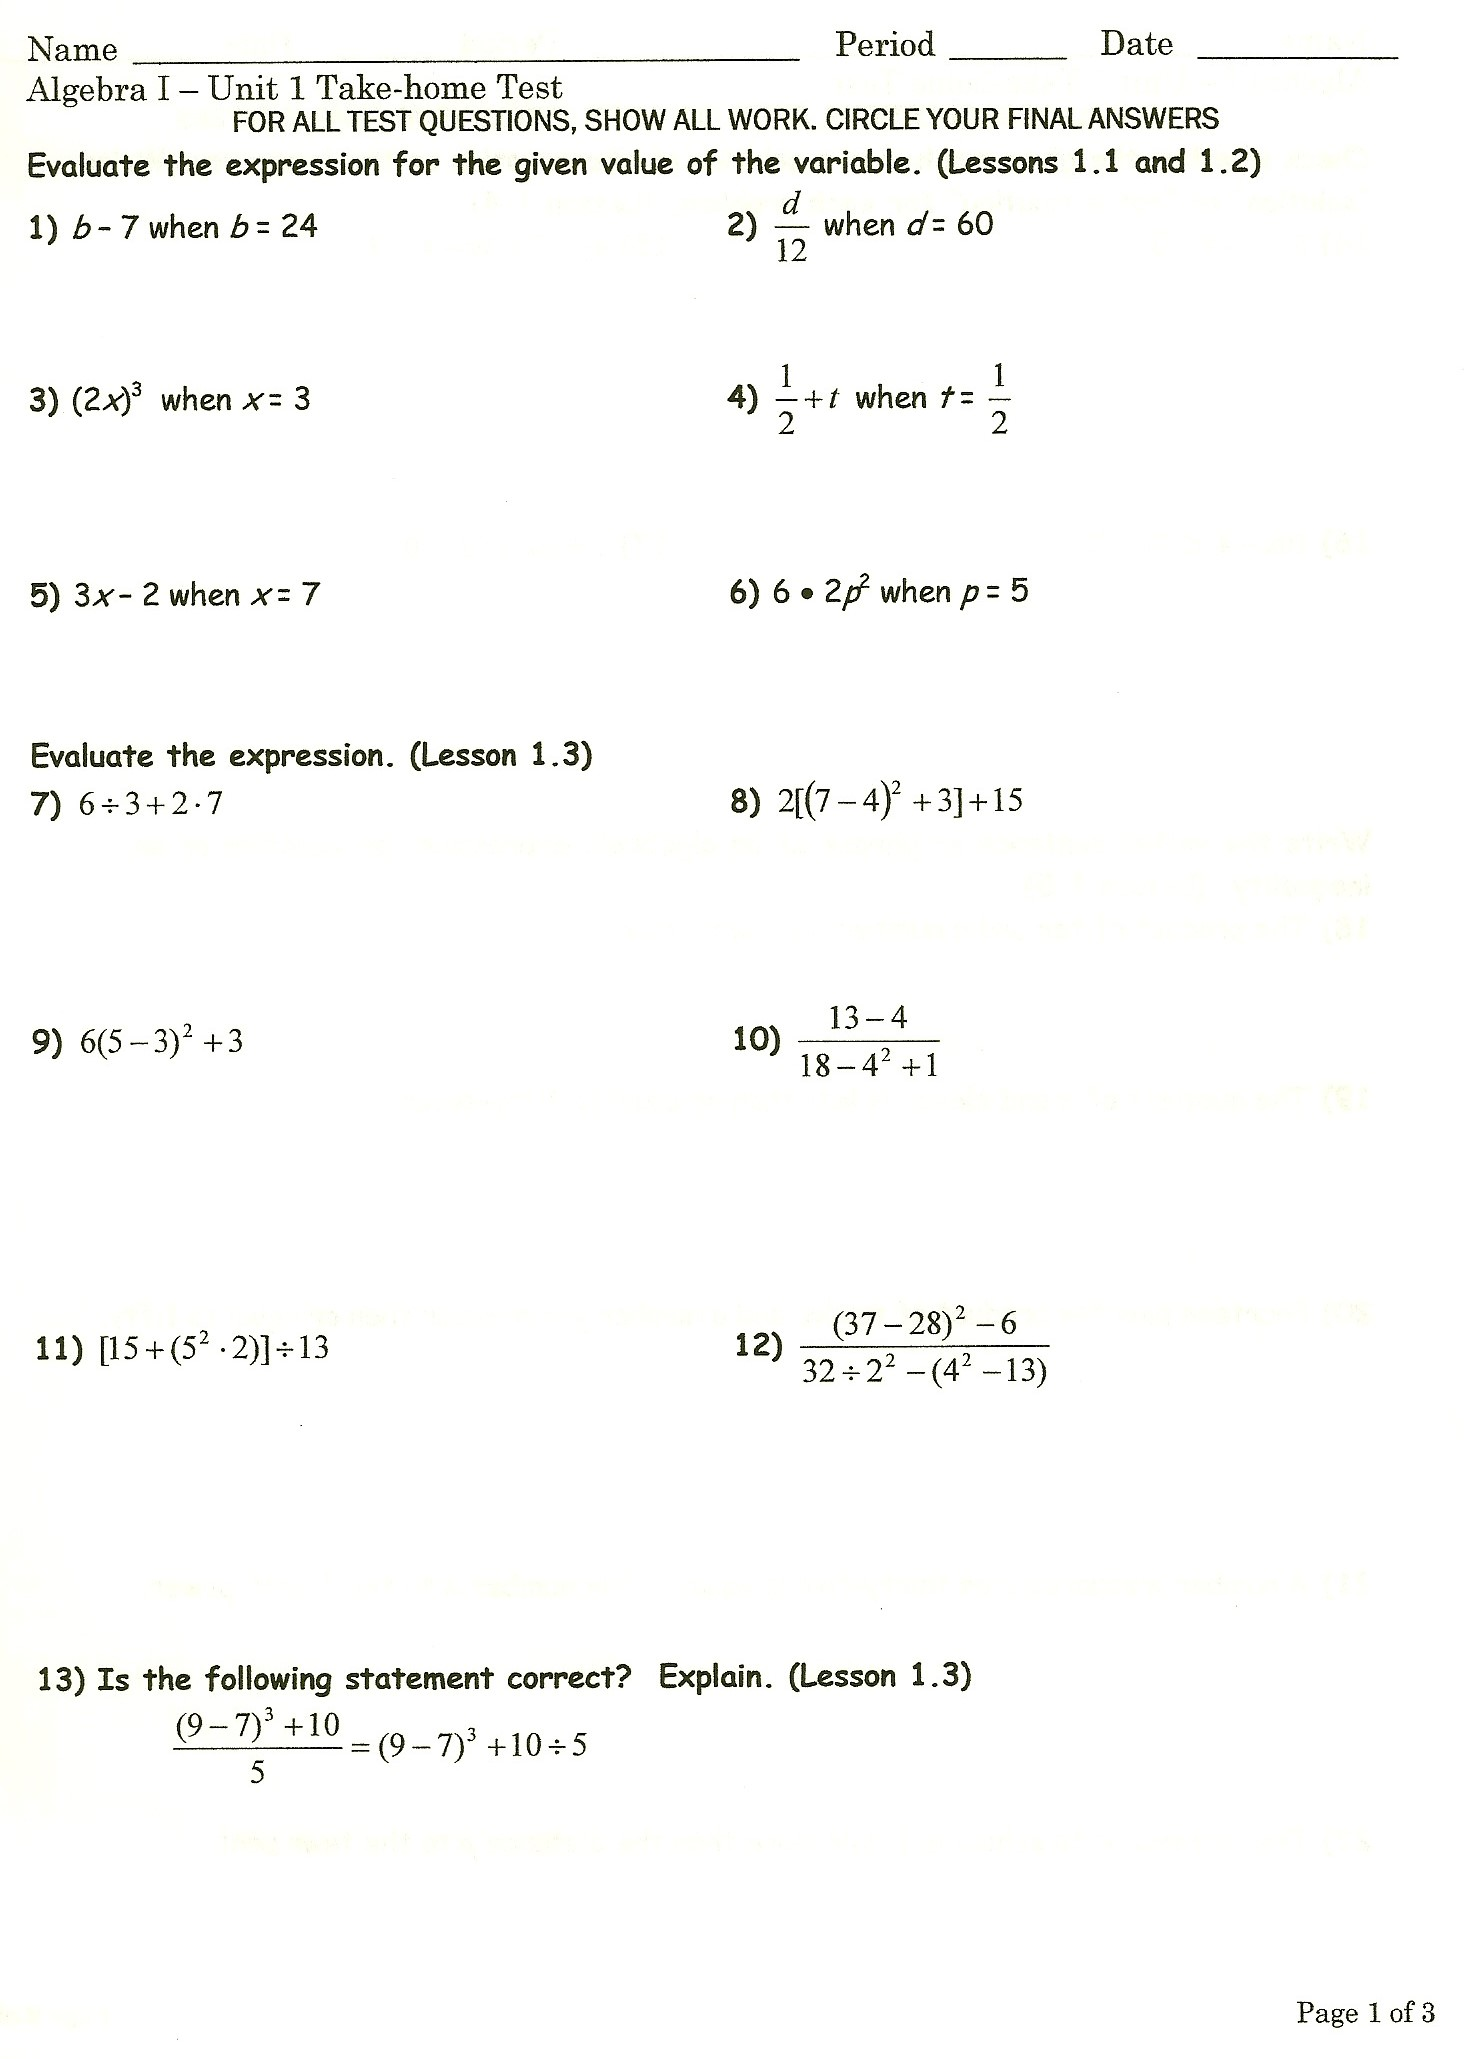 algebra ms kulcsar s website file